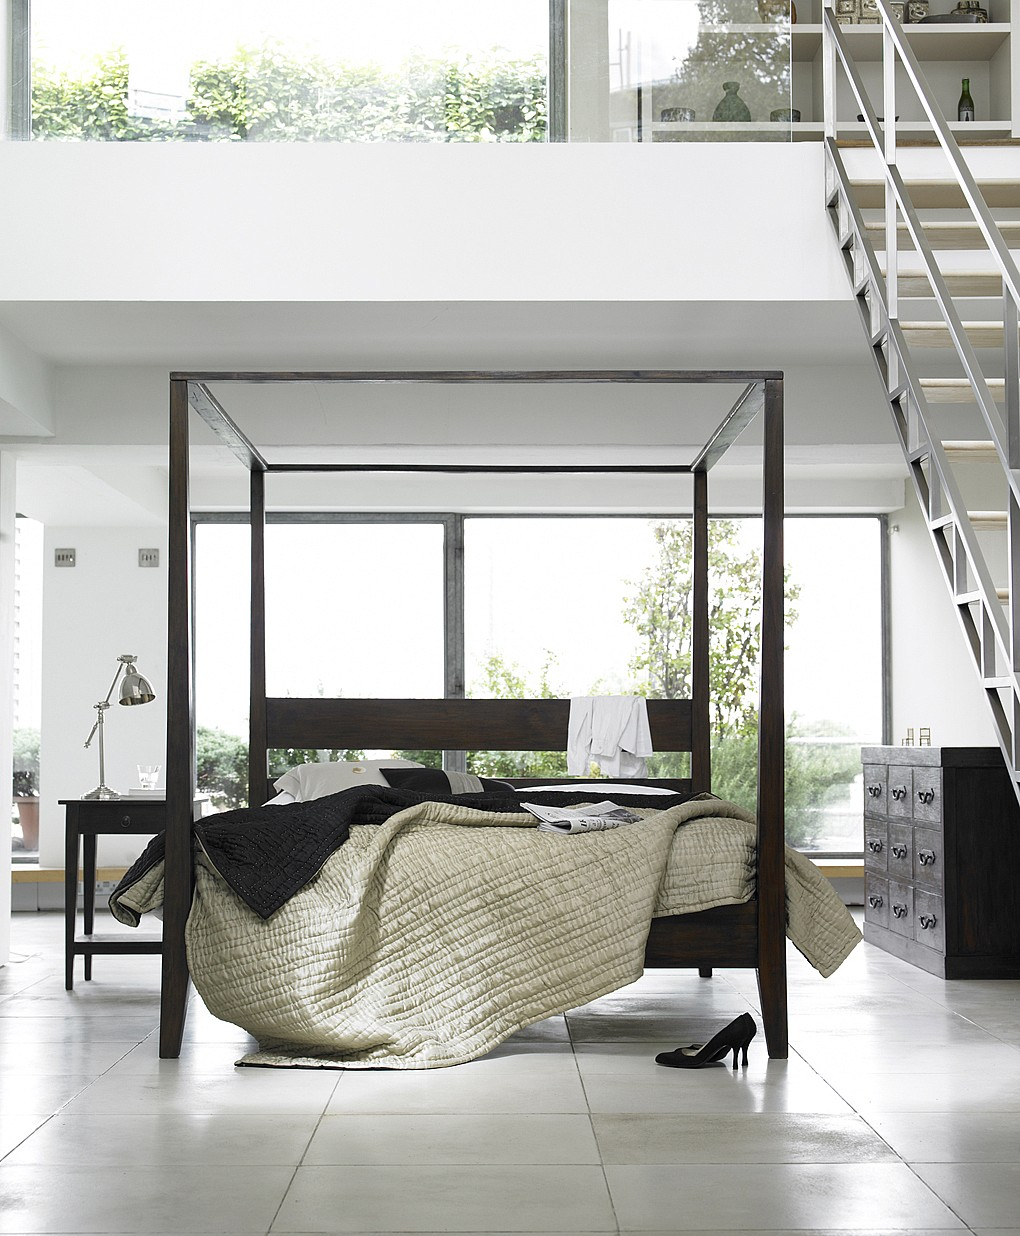 under-stair-living-space-design-with-modest-four-poster-bed-and-home-office-decor.jpg